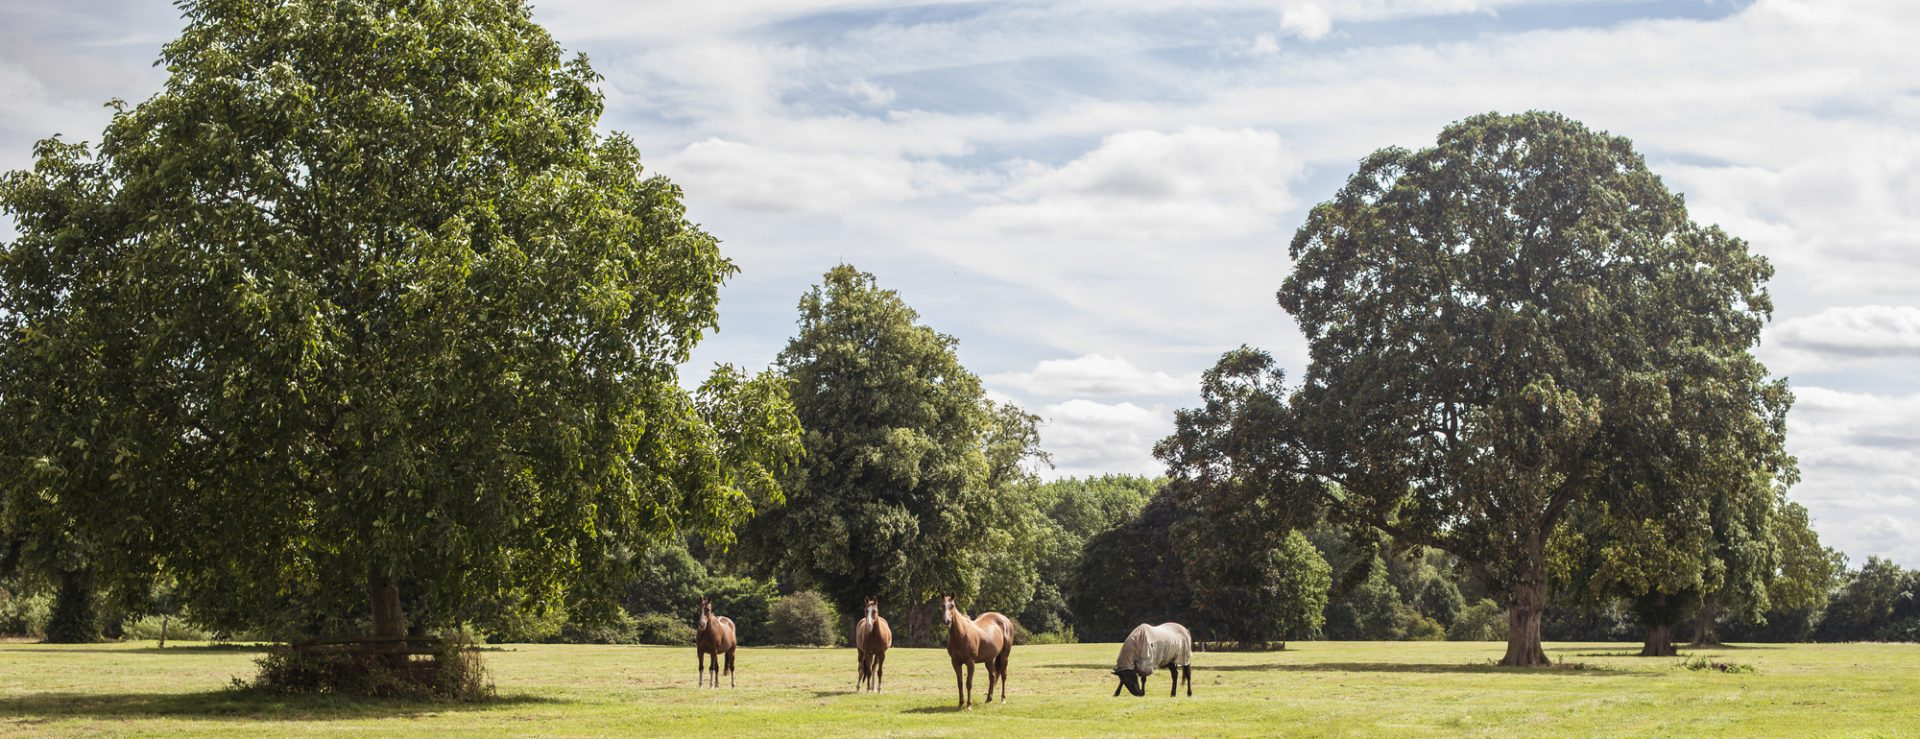 Polo Ponies grazing at Dallas Burston Polo Club